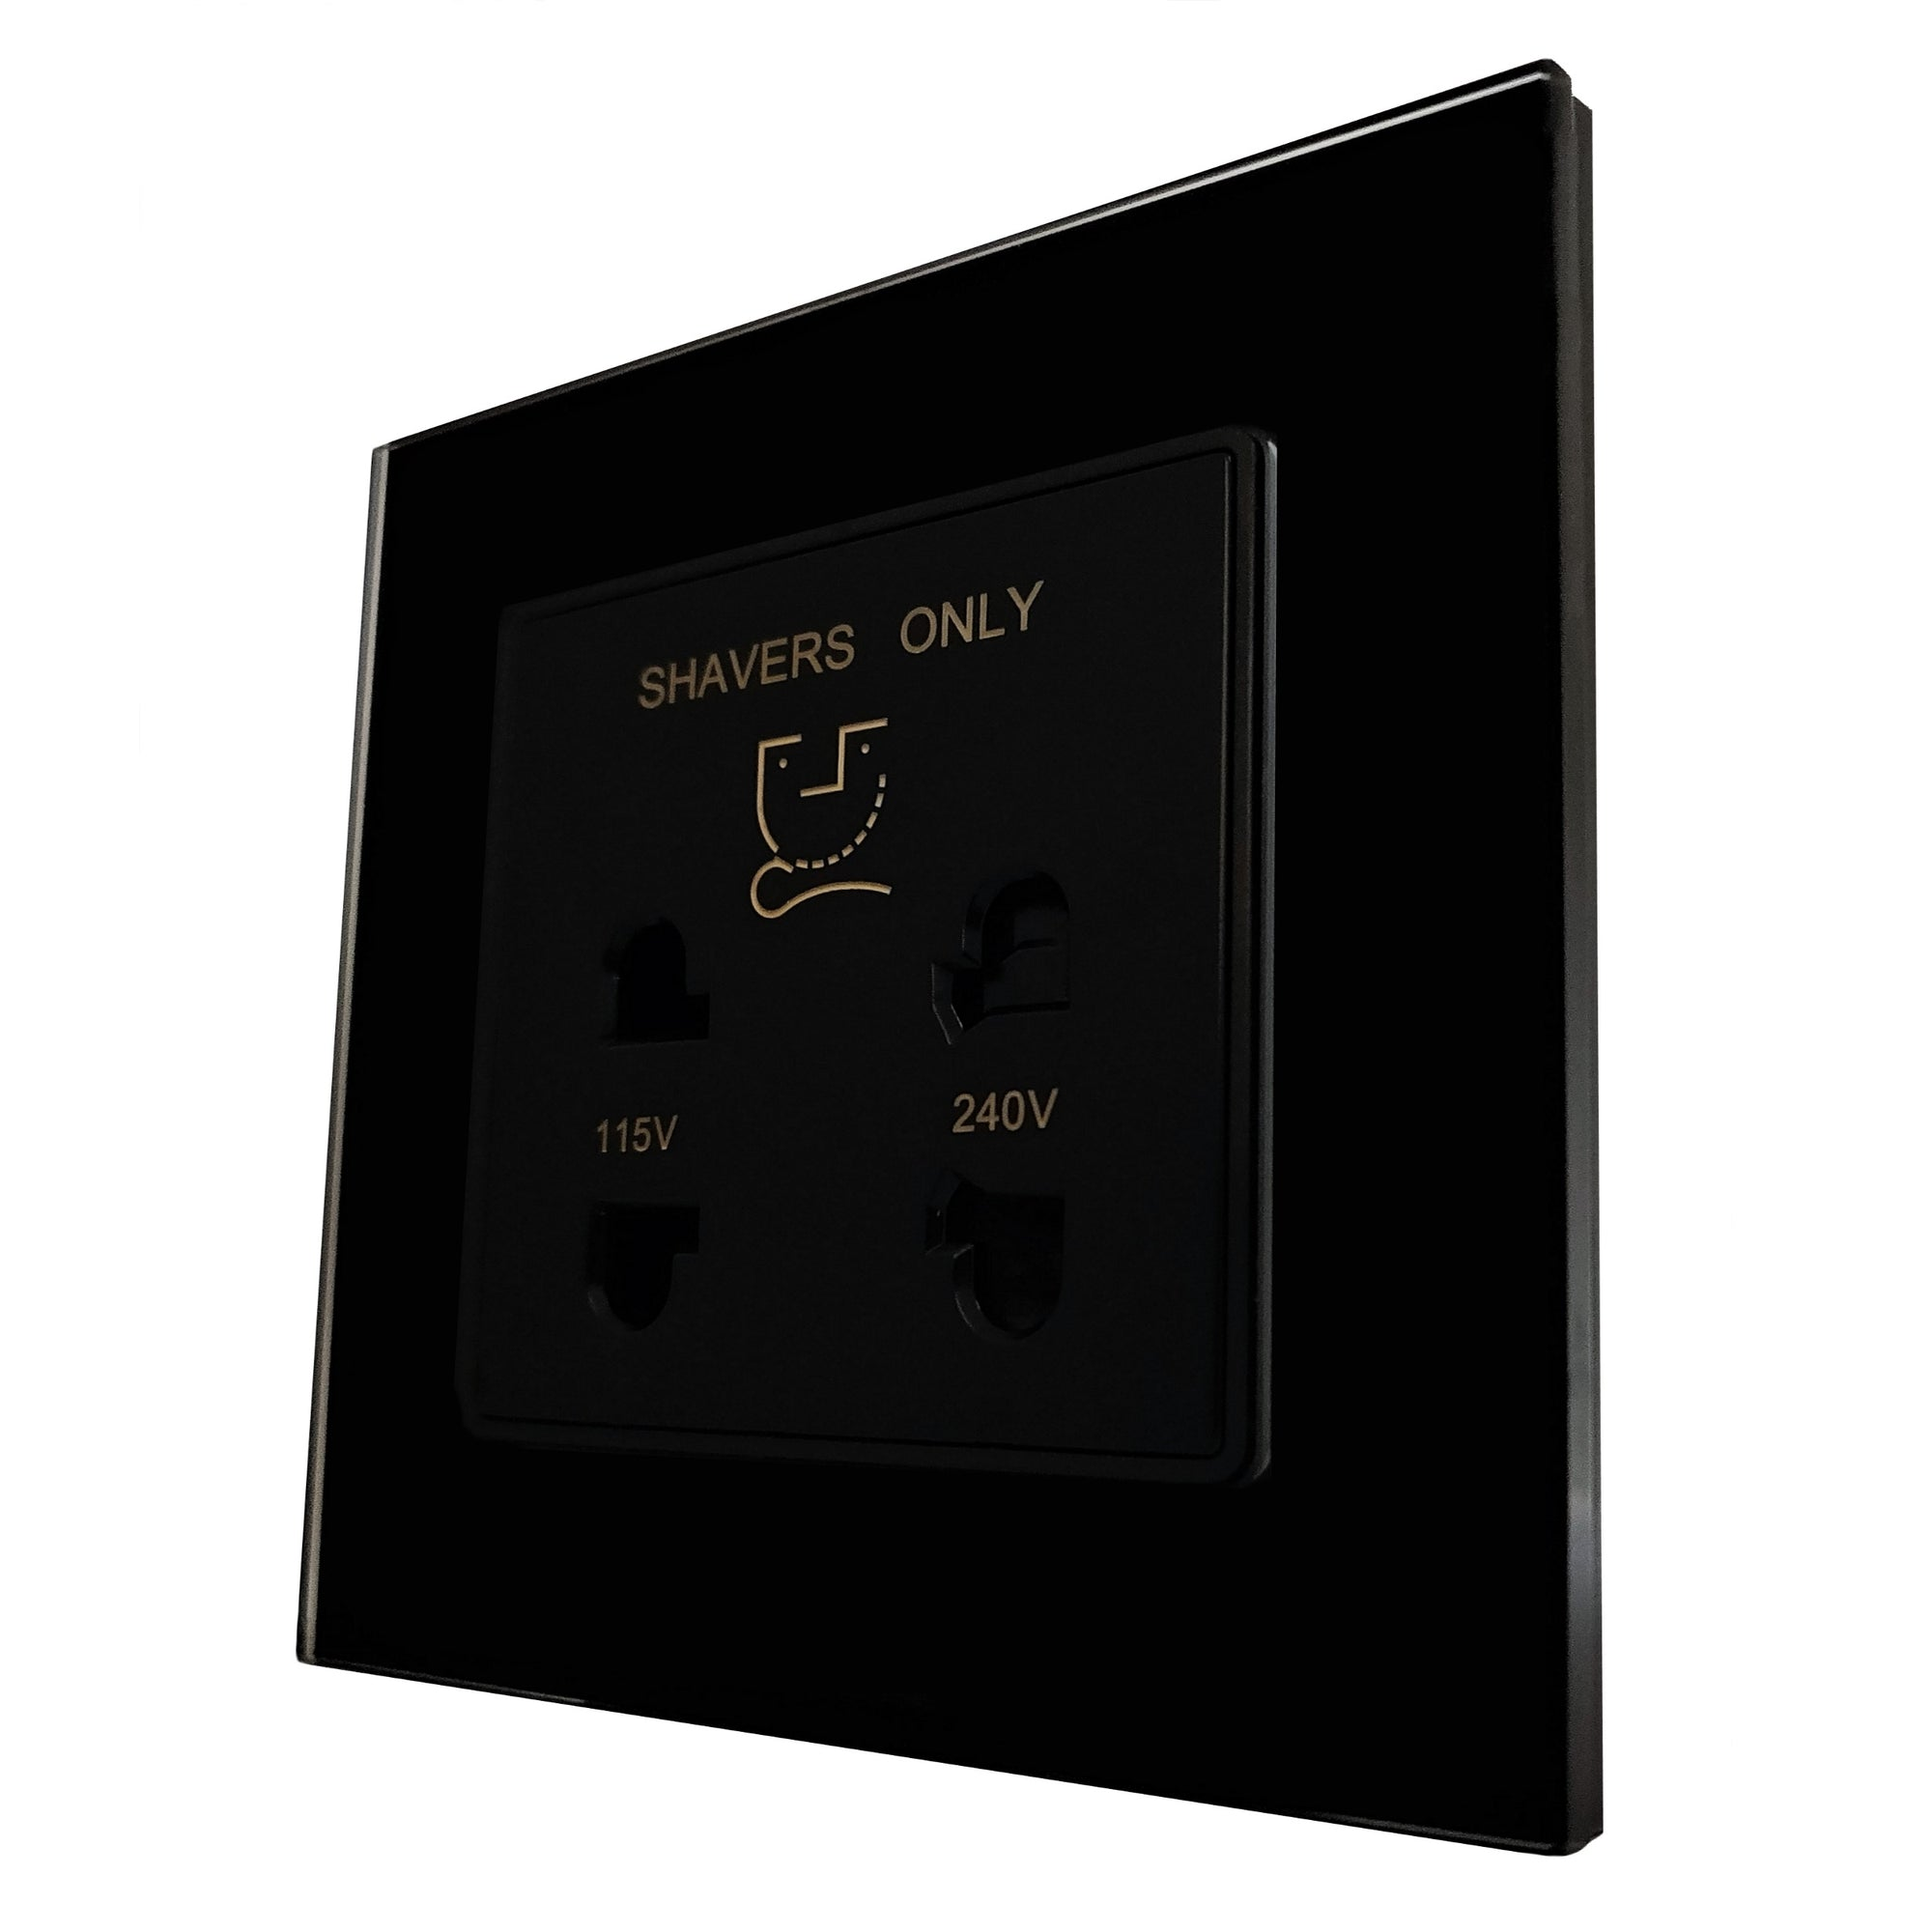 Single Shaver AC Wall Power Socket in Black Glass Frame & Black Centre